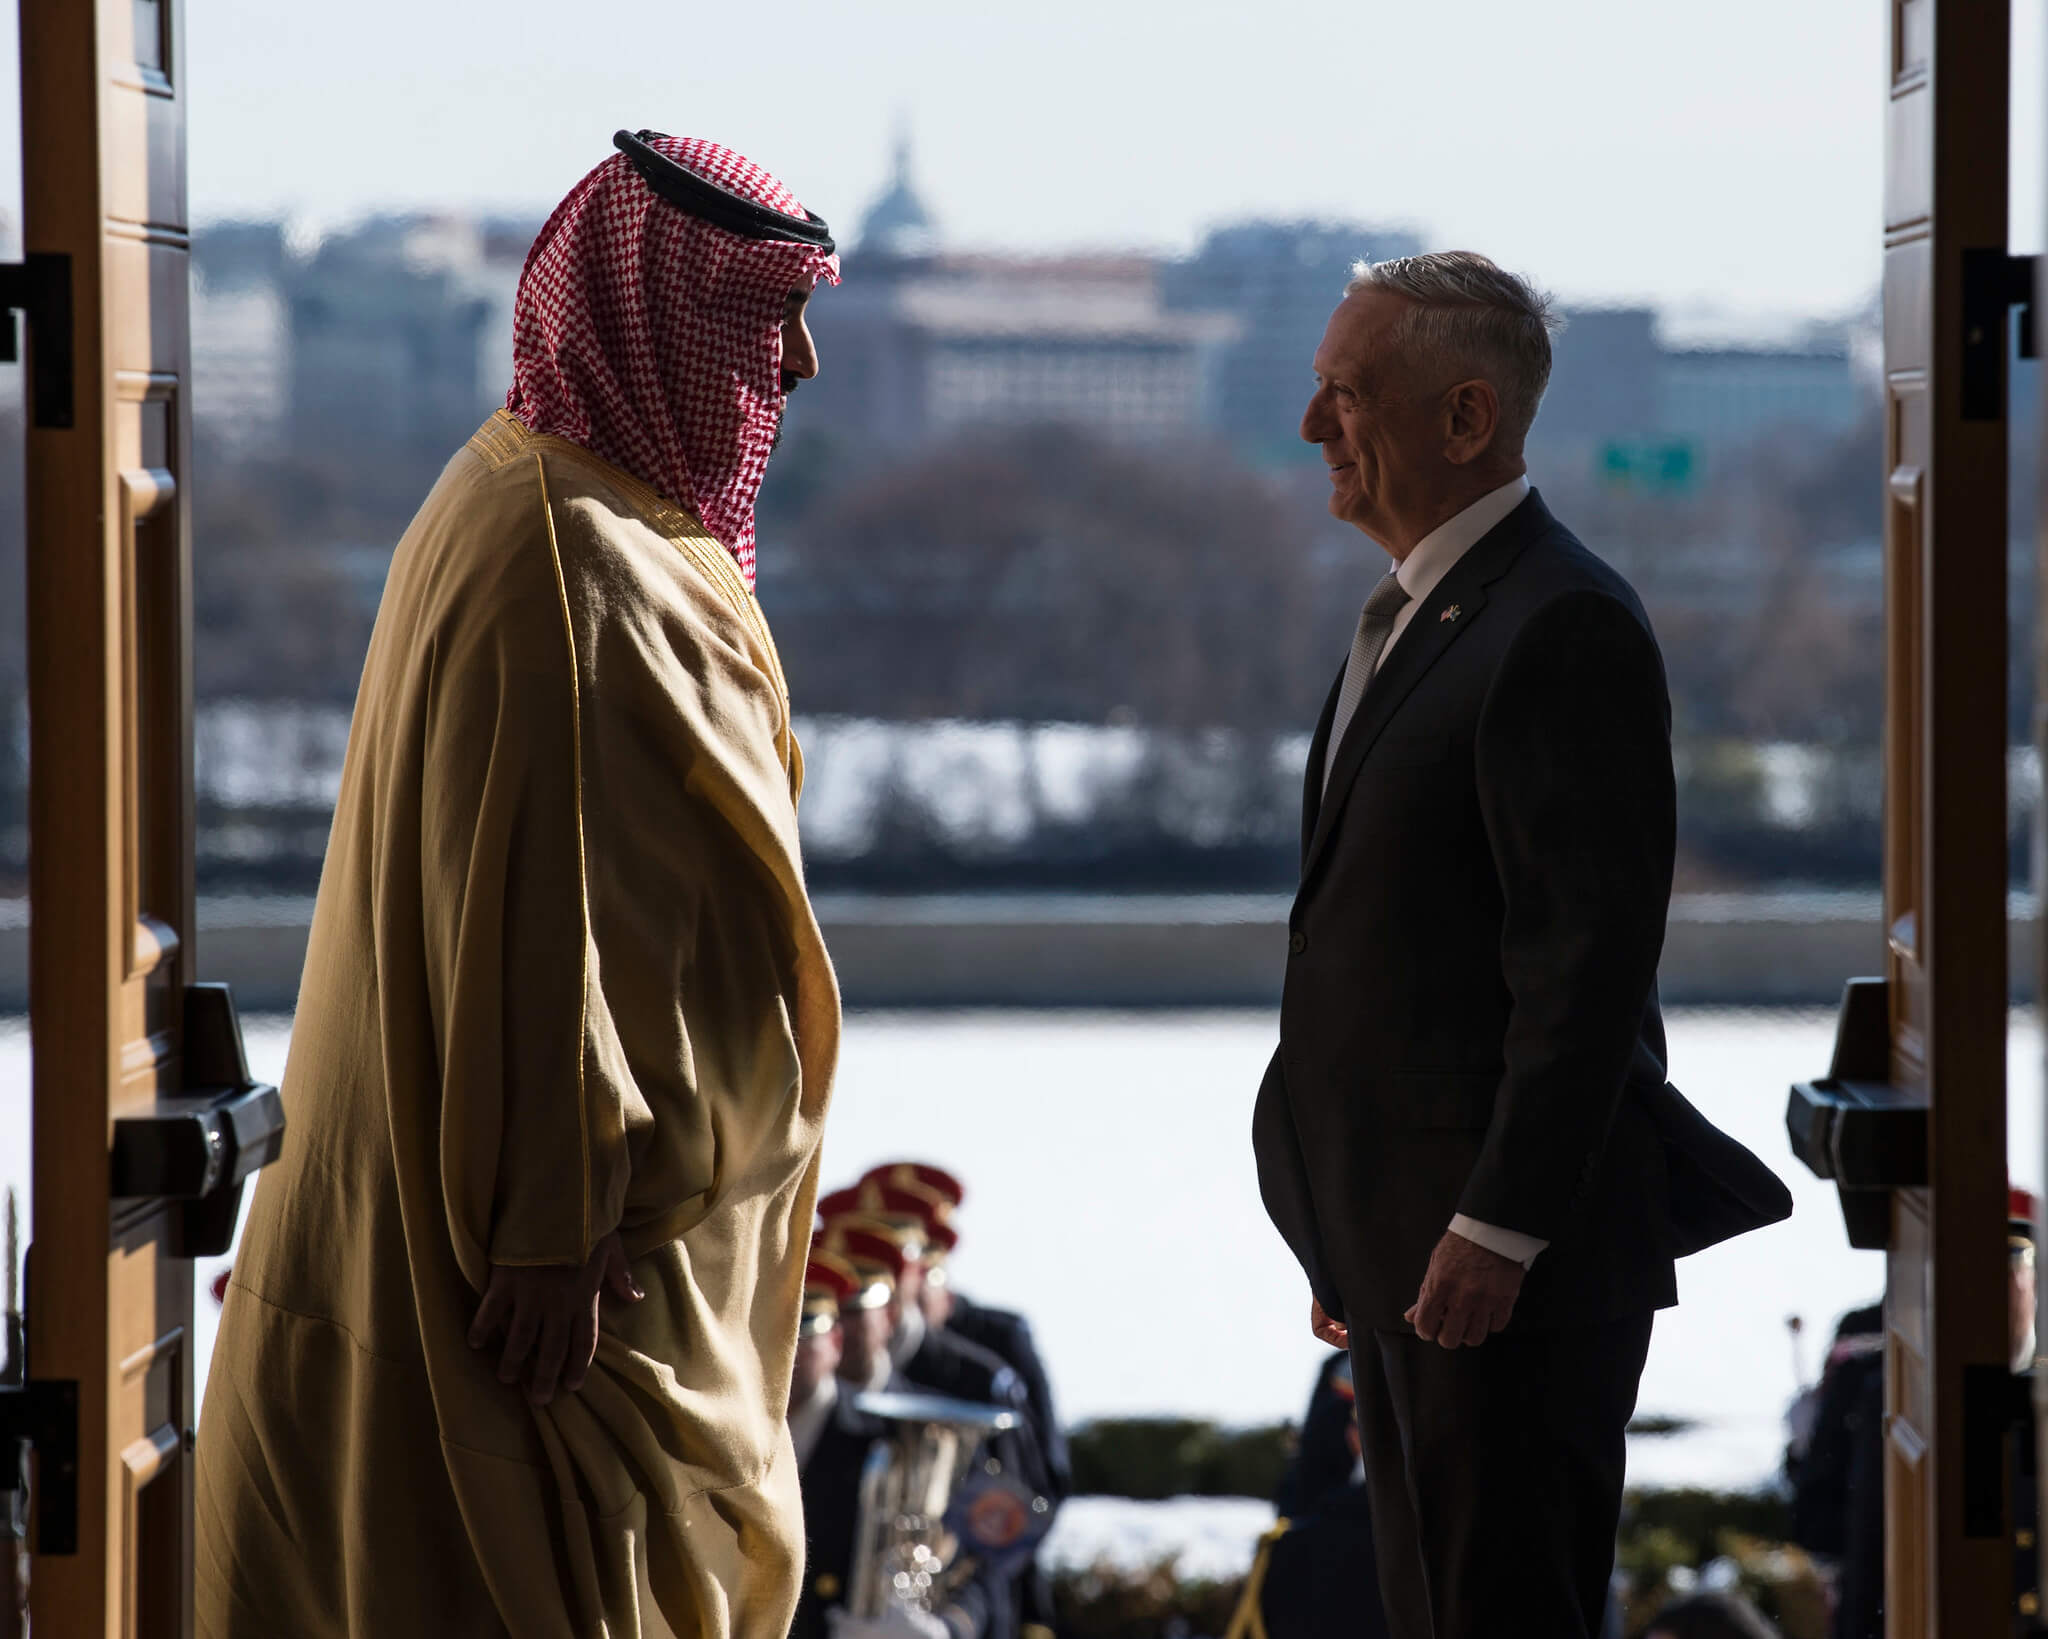 Aarts-De Saoedische kroonprins Mohammed bin Salman met de toenmalige Amerikaanse minister James Mattis in Washington, 2018. © US Secretary of Defense - Flickr